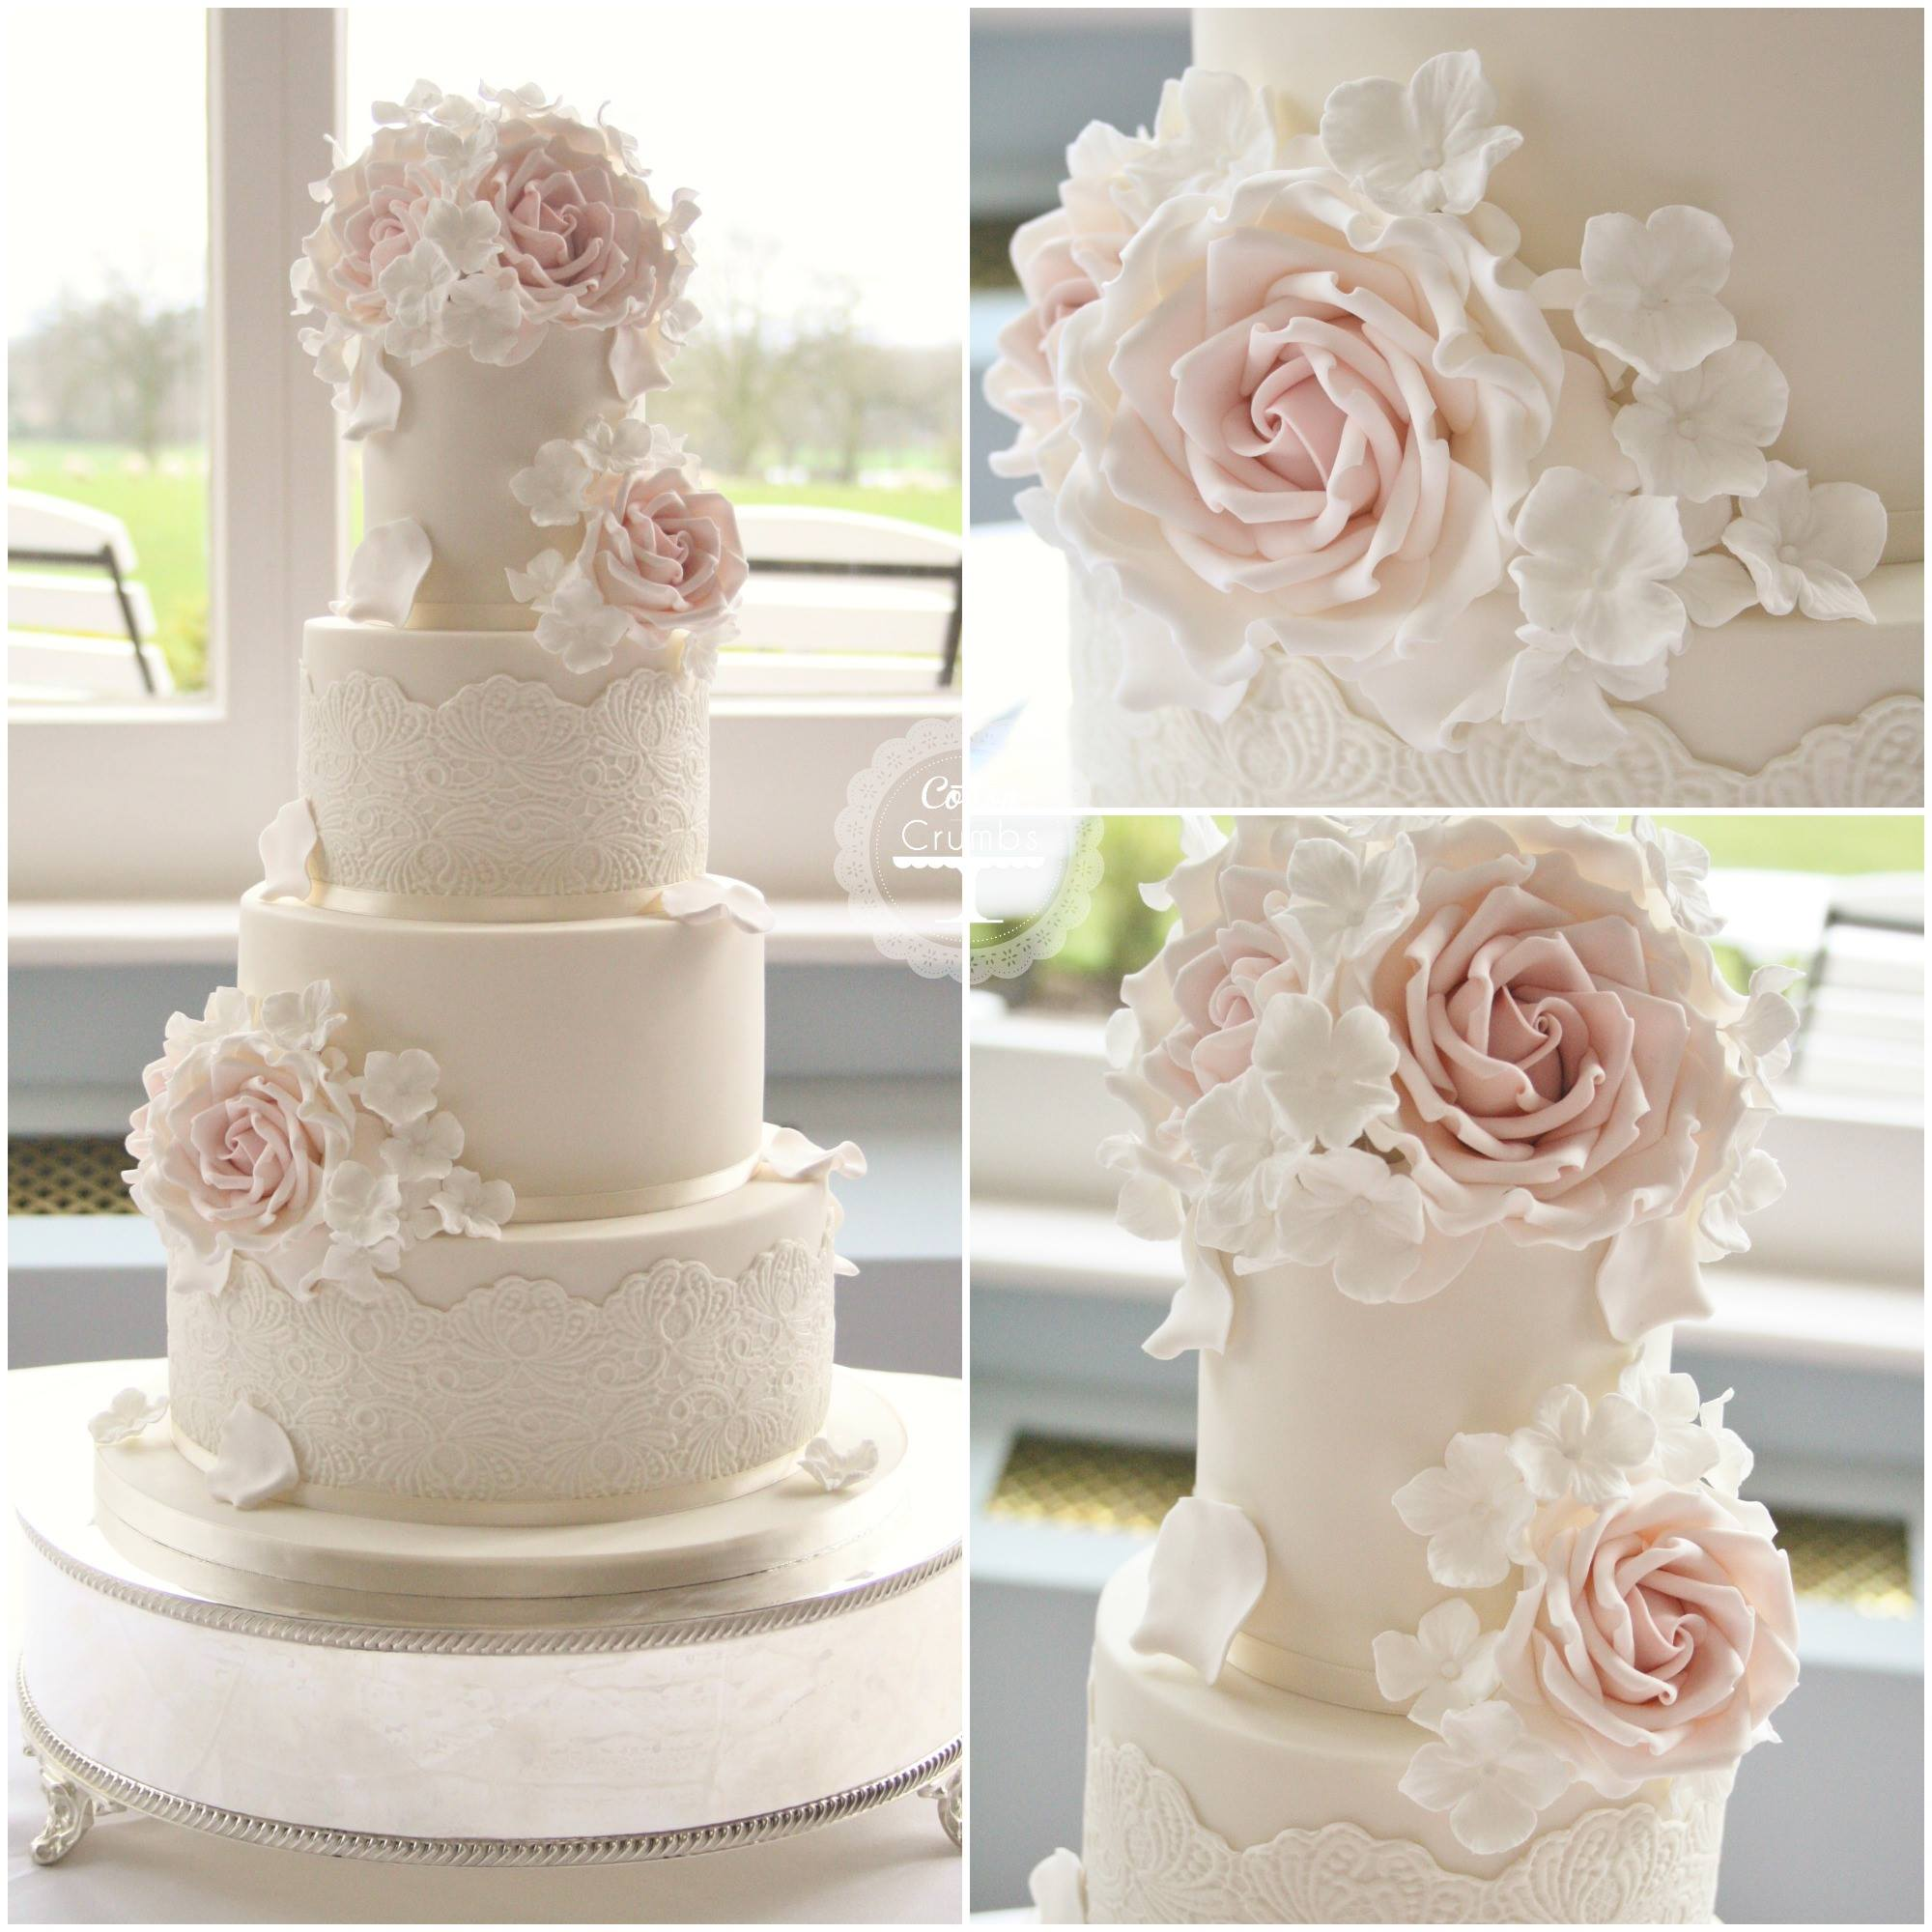 wedding-cake-ideas-14-06202014nz